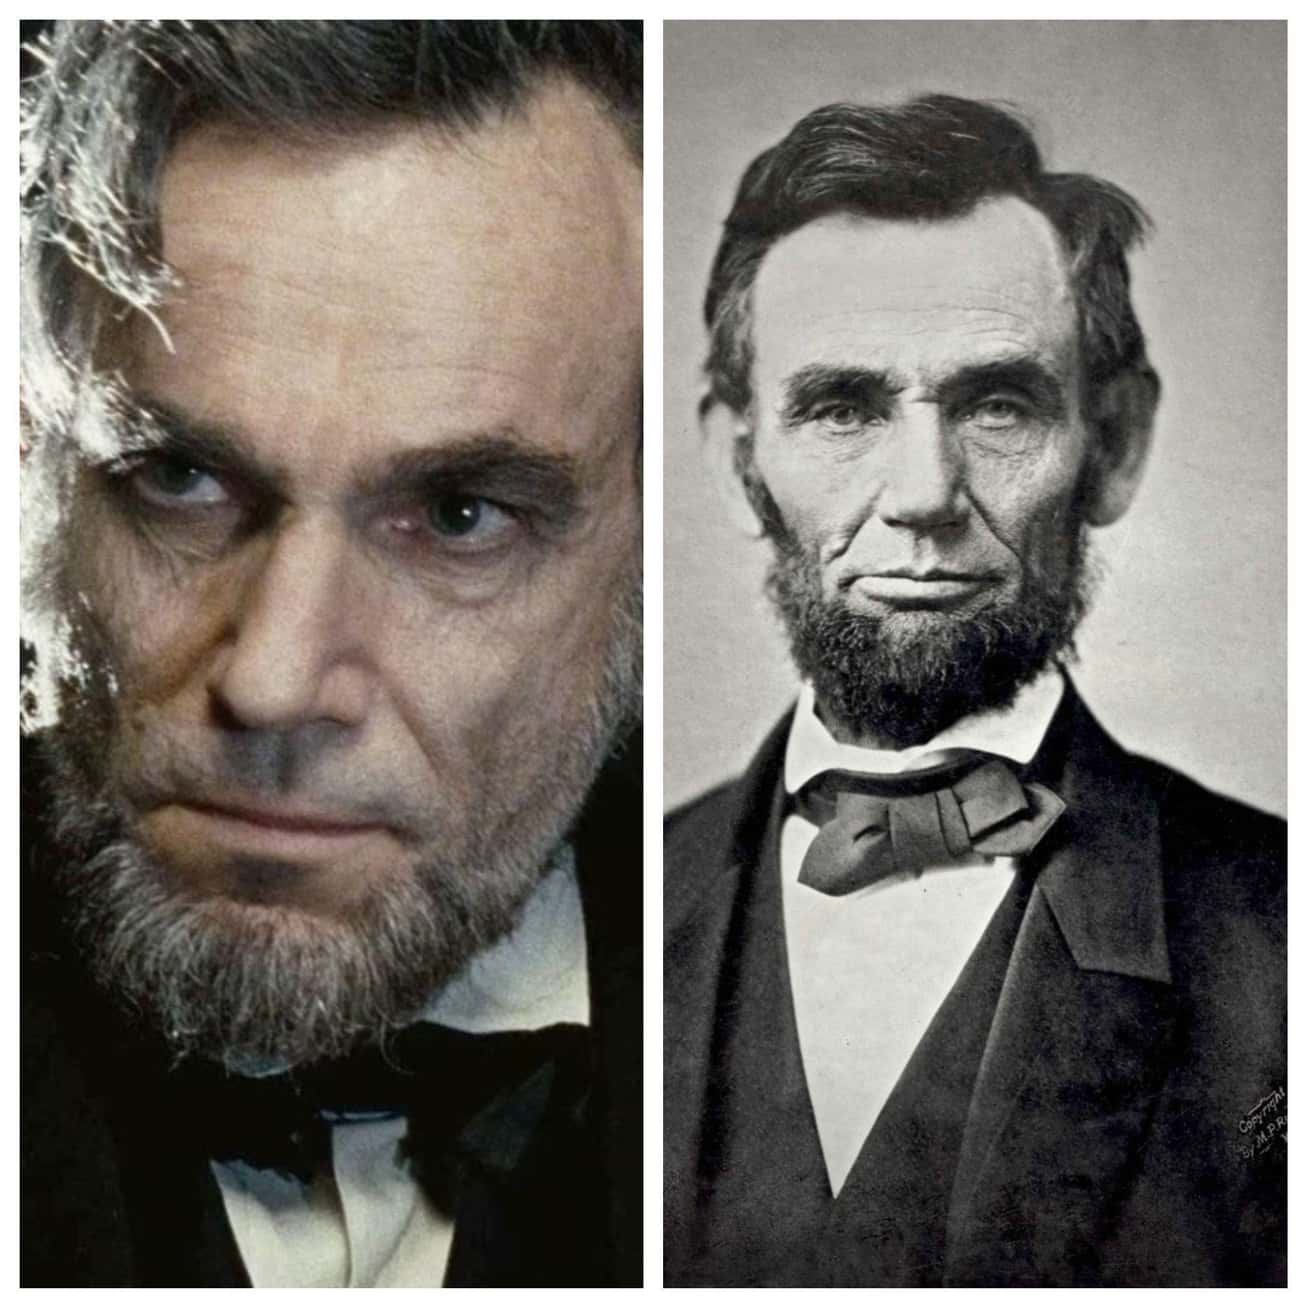 Daniel Day-Lewis Vs. Abraham L is listed (or ranked) 3 on the list 21 Actors Vs. The Historical Figures They Portrayed On-Screen